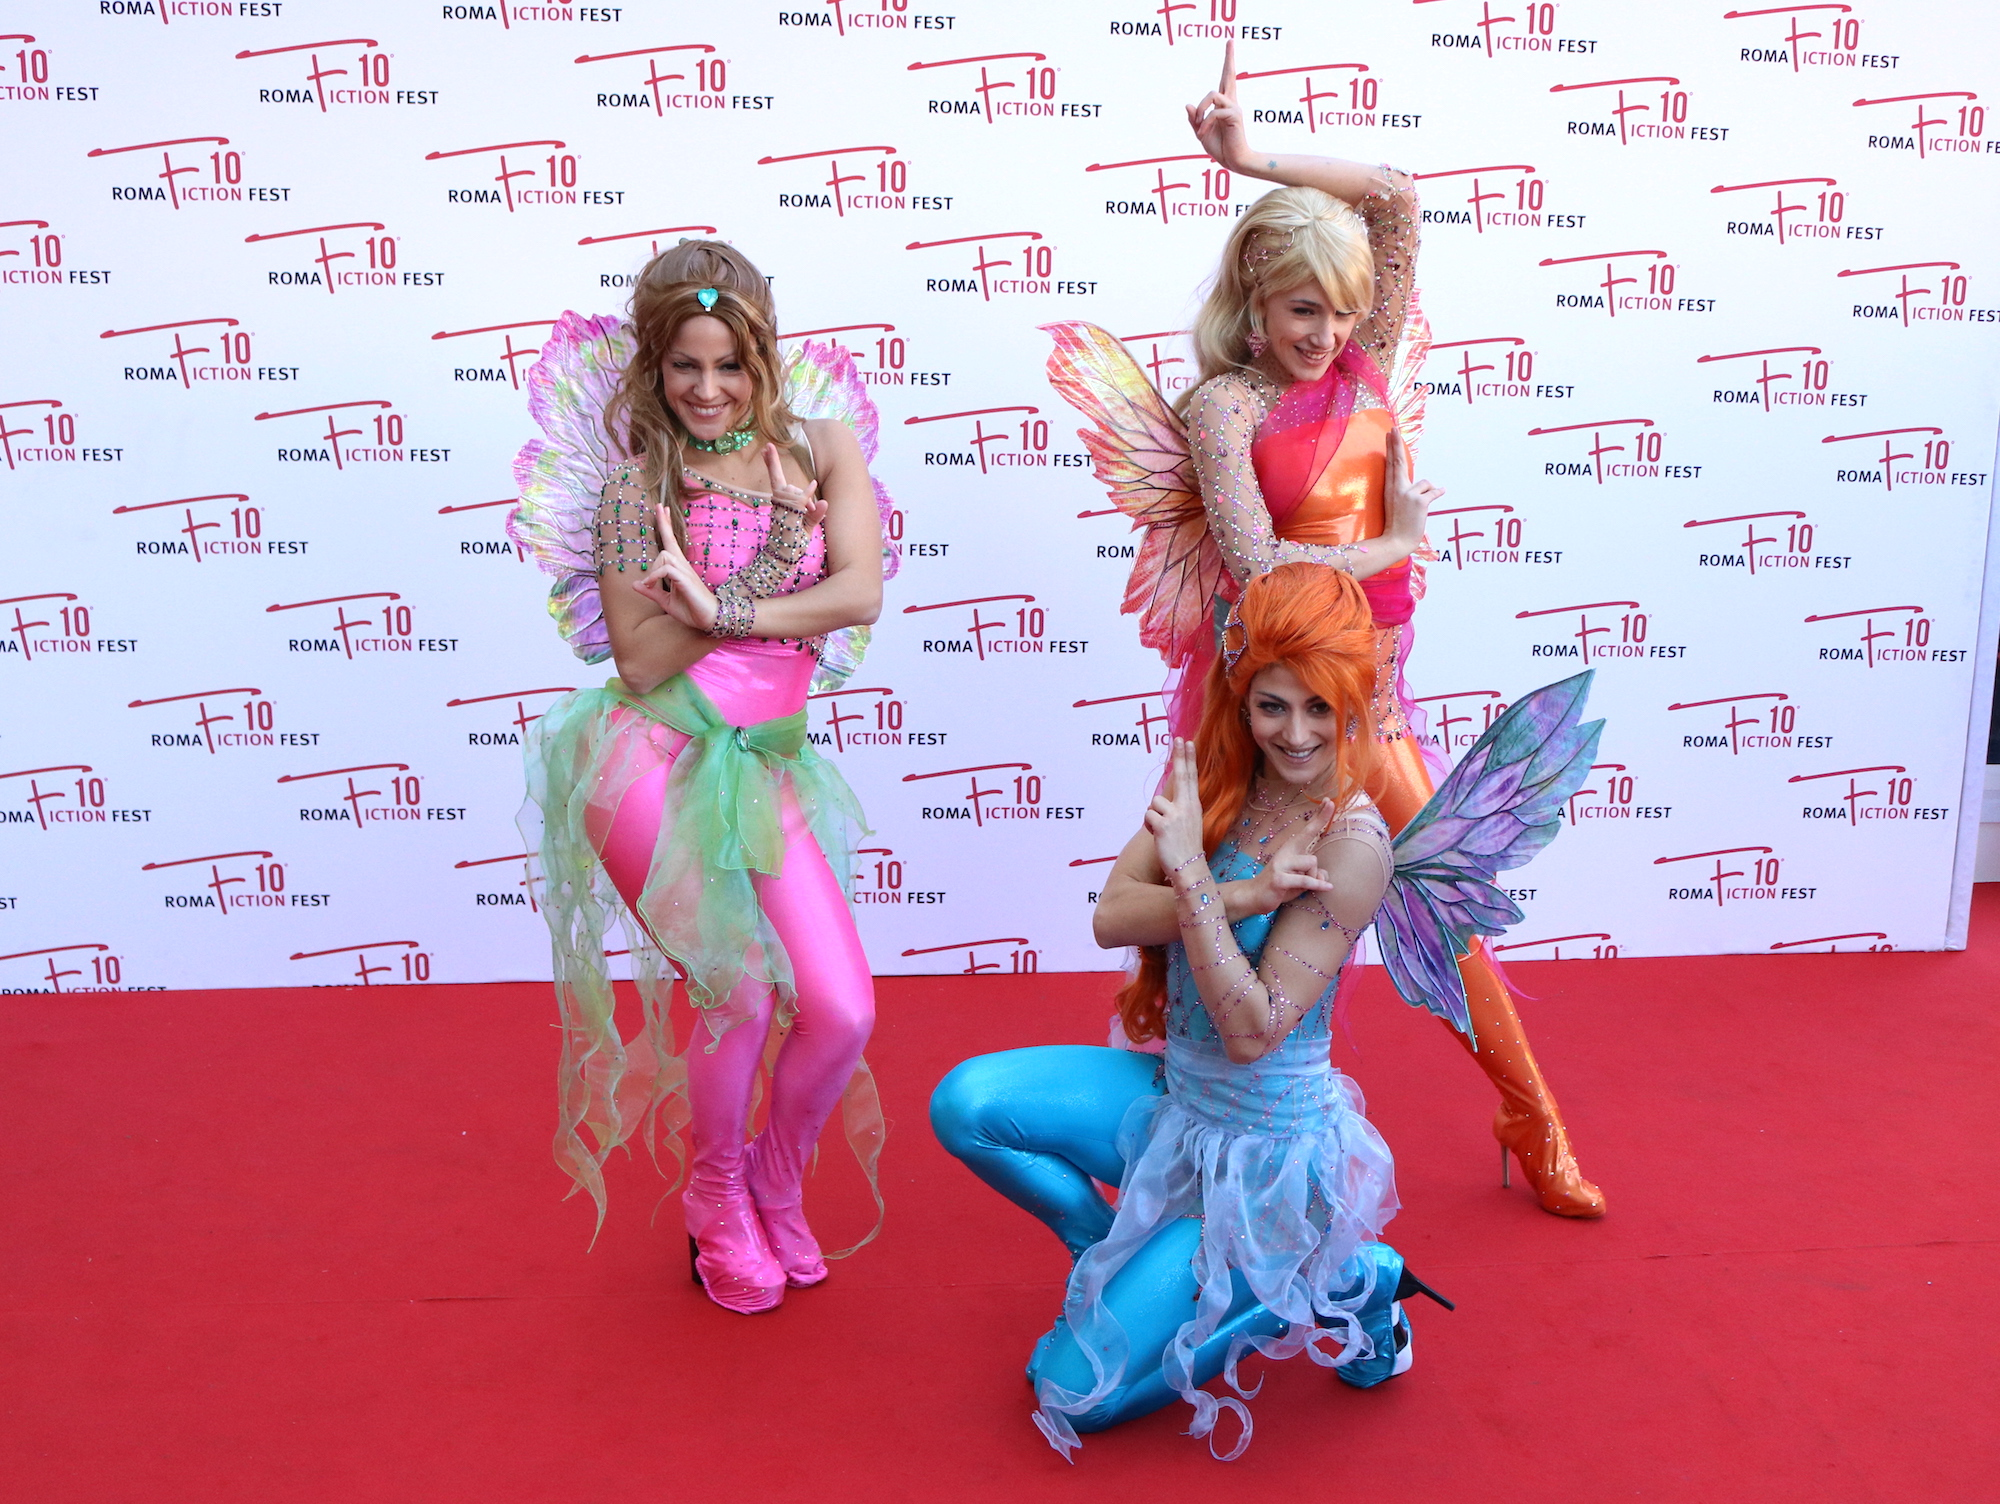 Roma Fiction Fest 2016: le Winx in posa sul red carpet